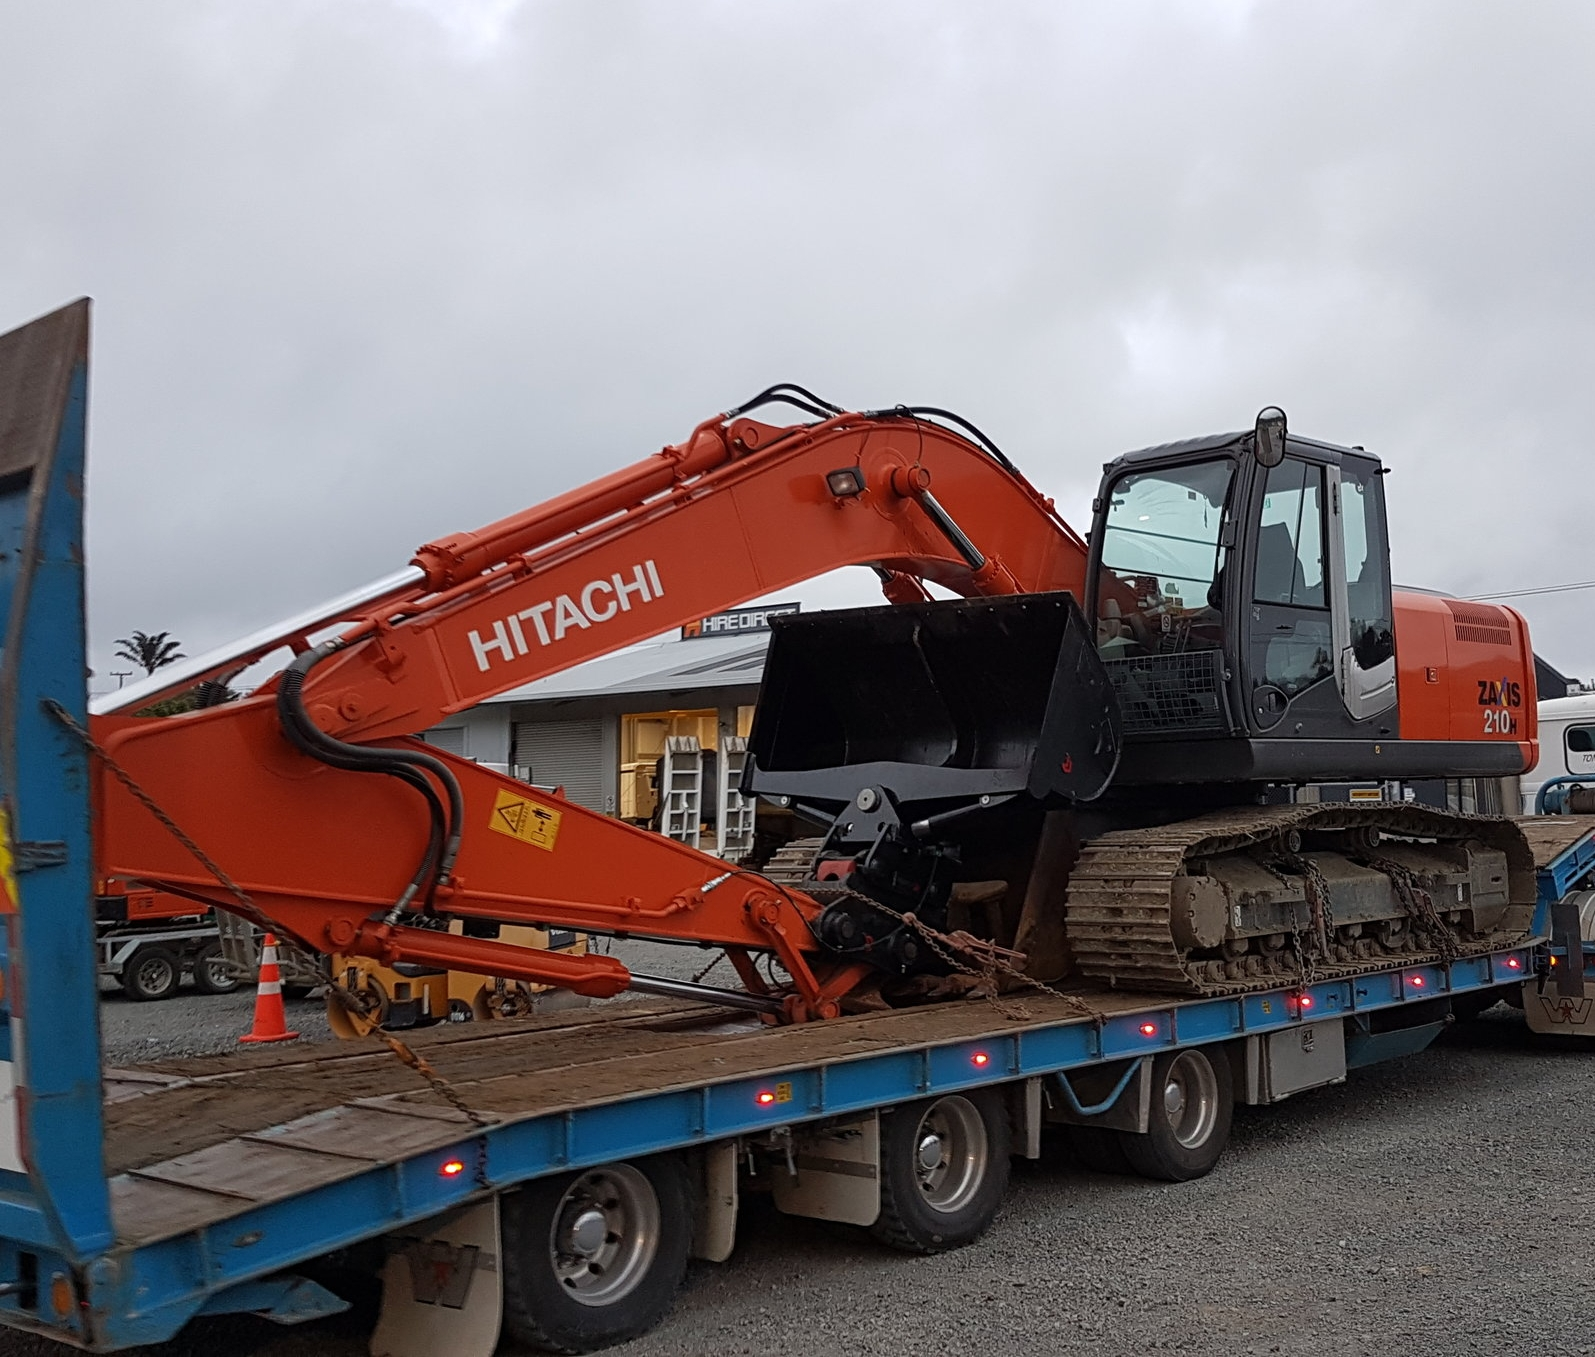 2013 Hitachi ZX210H-3, fitted with Robur Hitch & Tilt Bucket